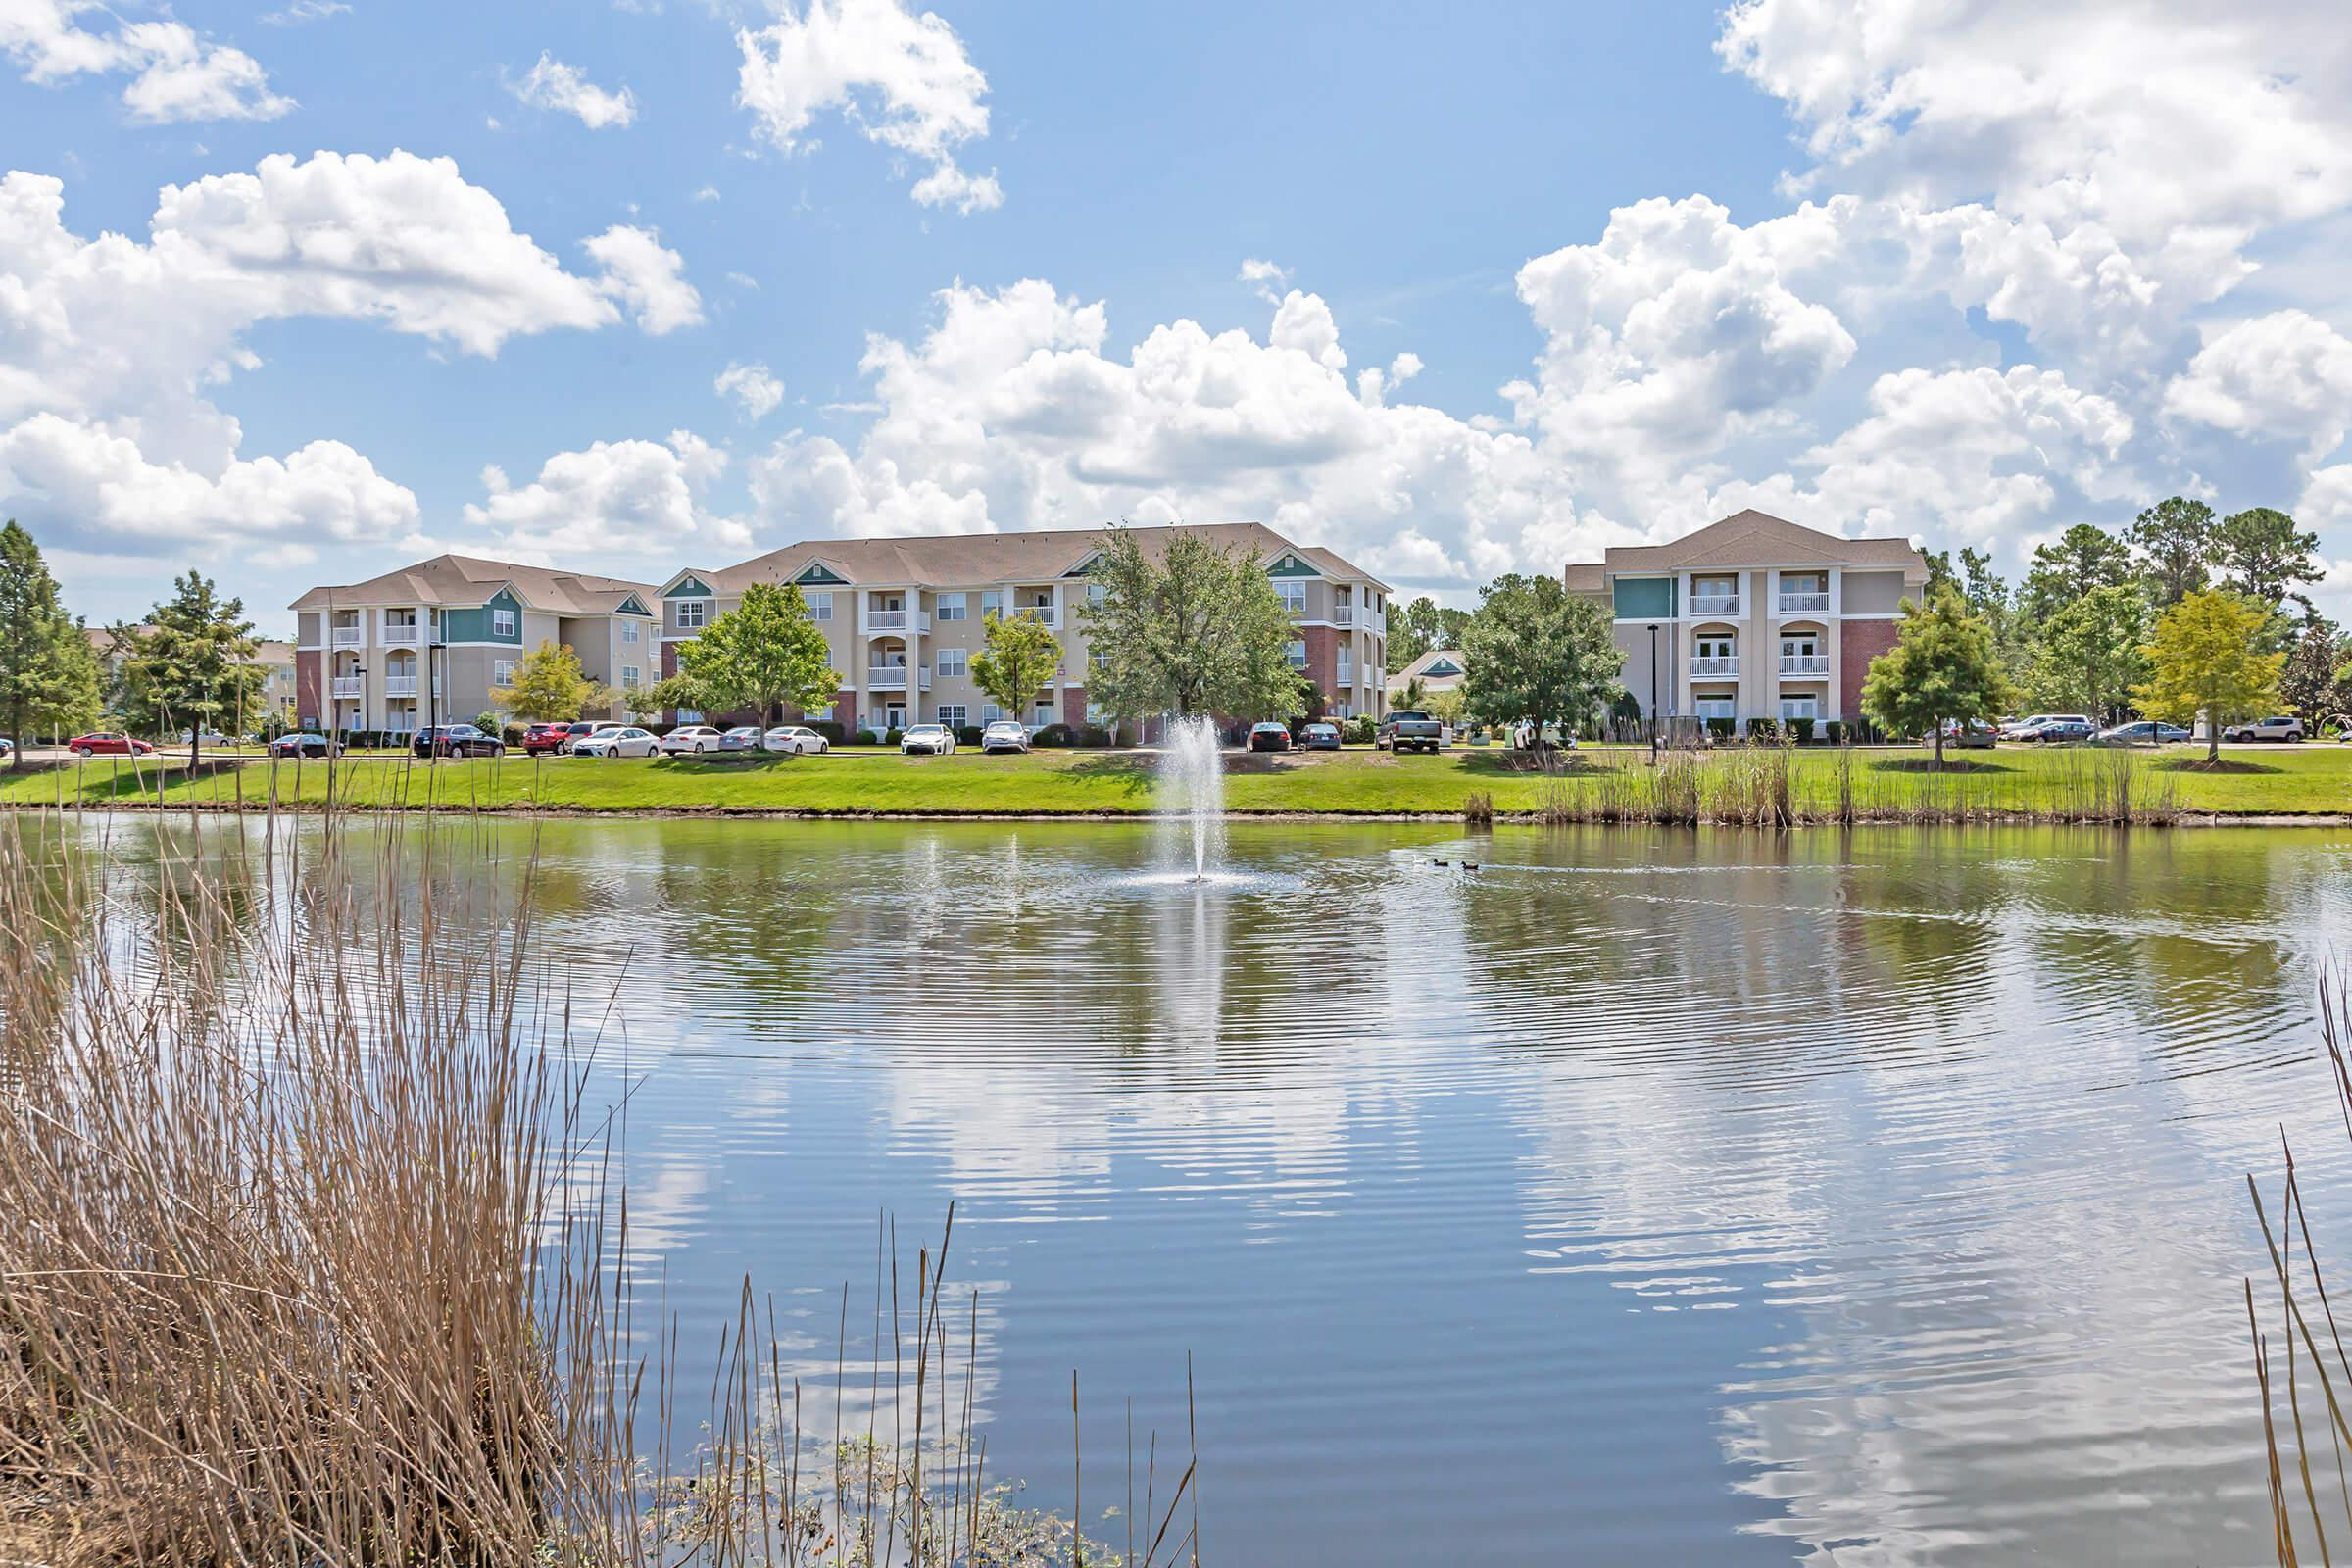 Beautiful Landscaping At New Providence Park In Wilmington, NC